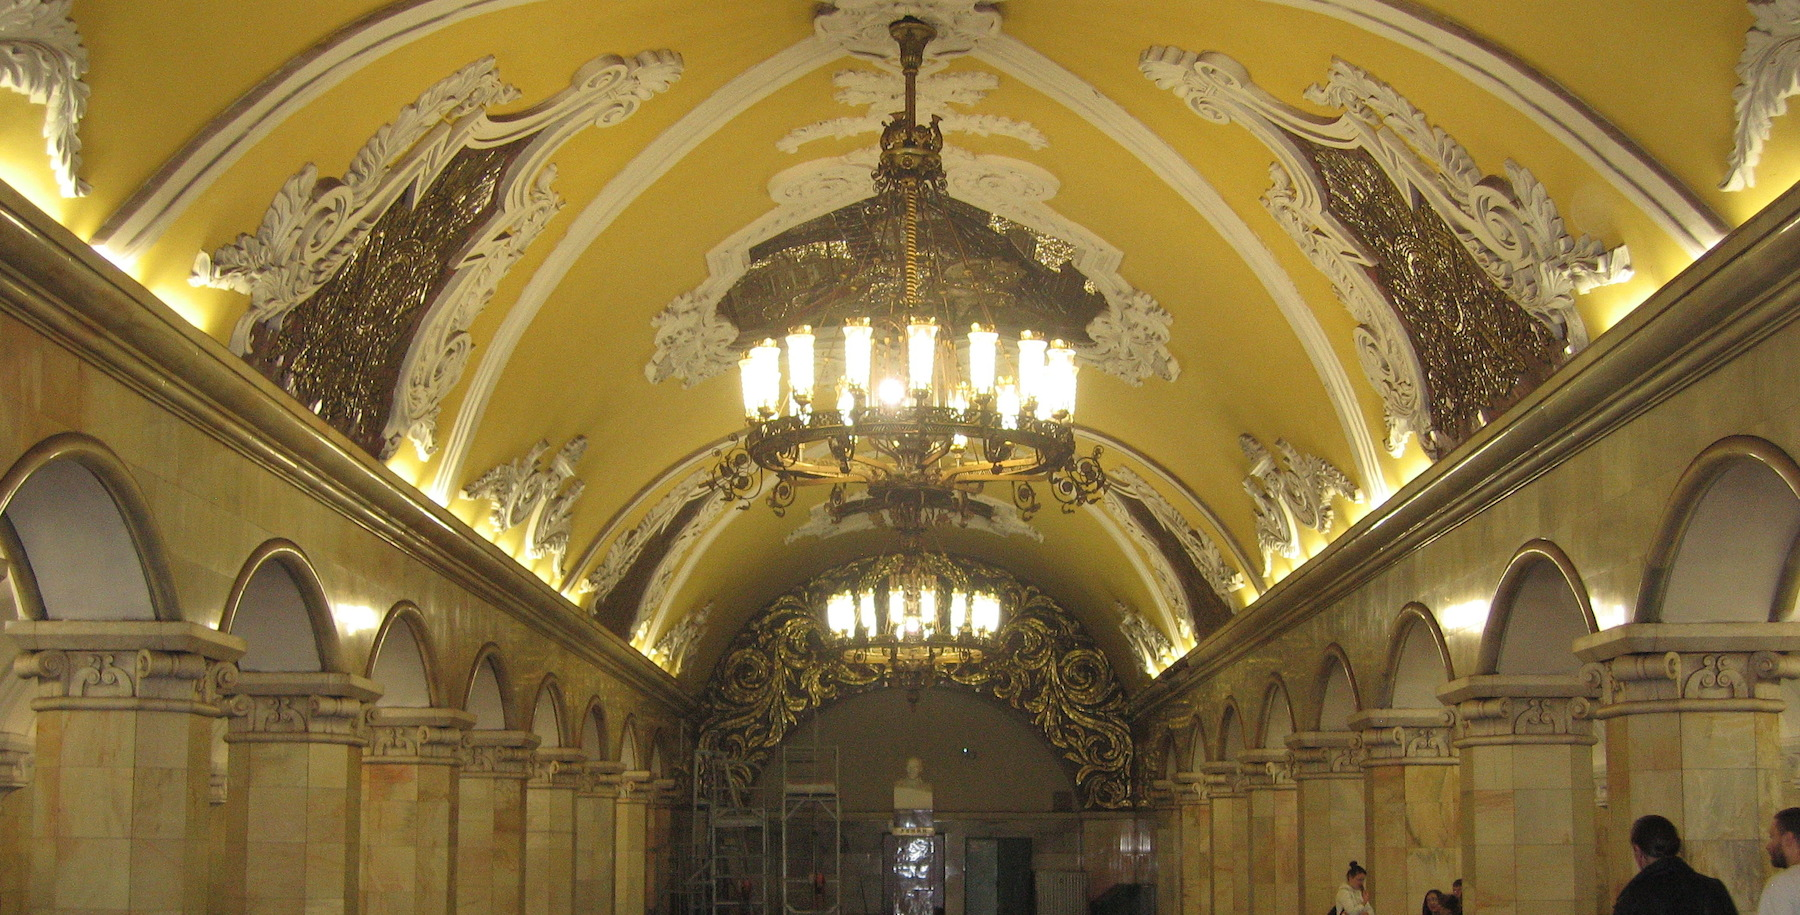 Baroque architecture and ceiling inside the Komsomolskaya Station.